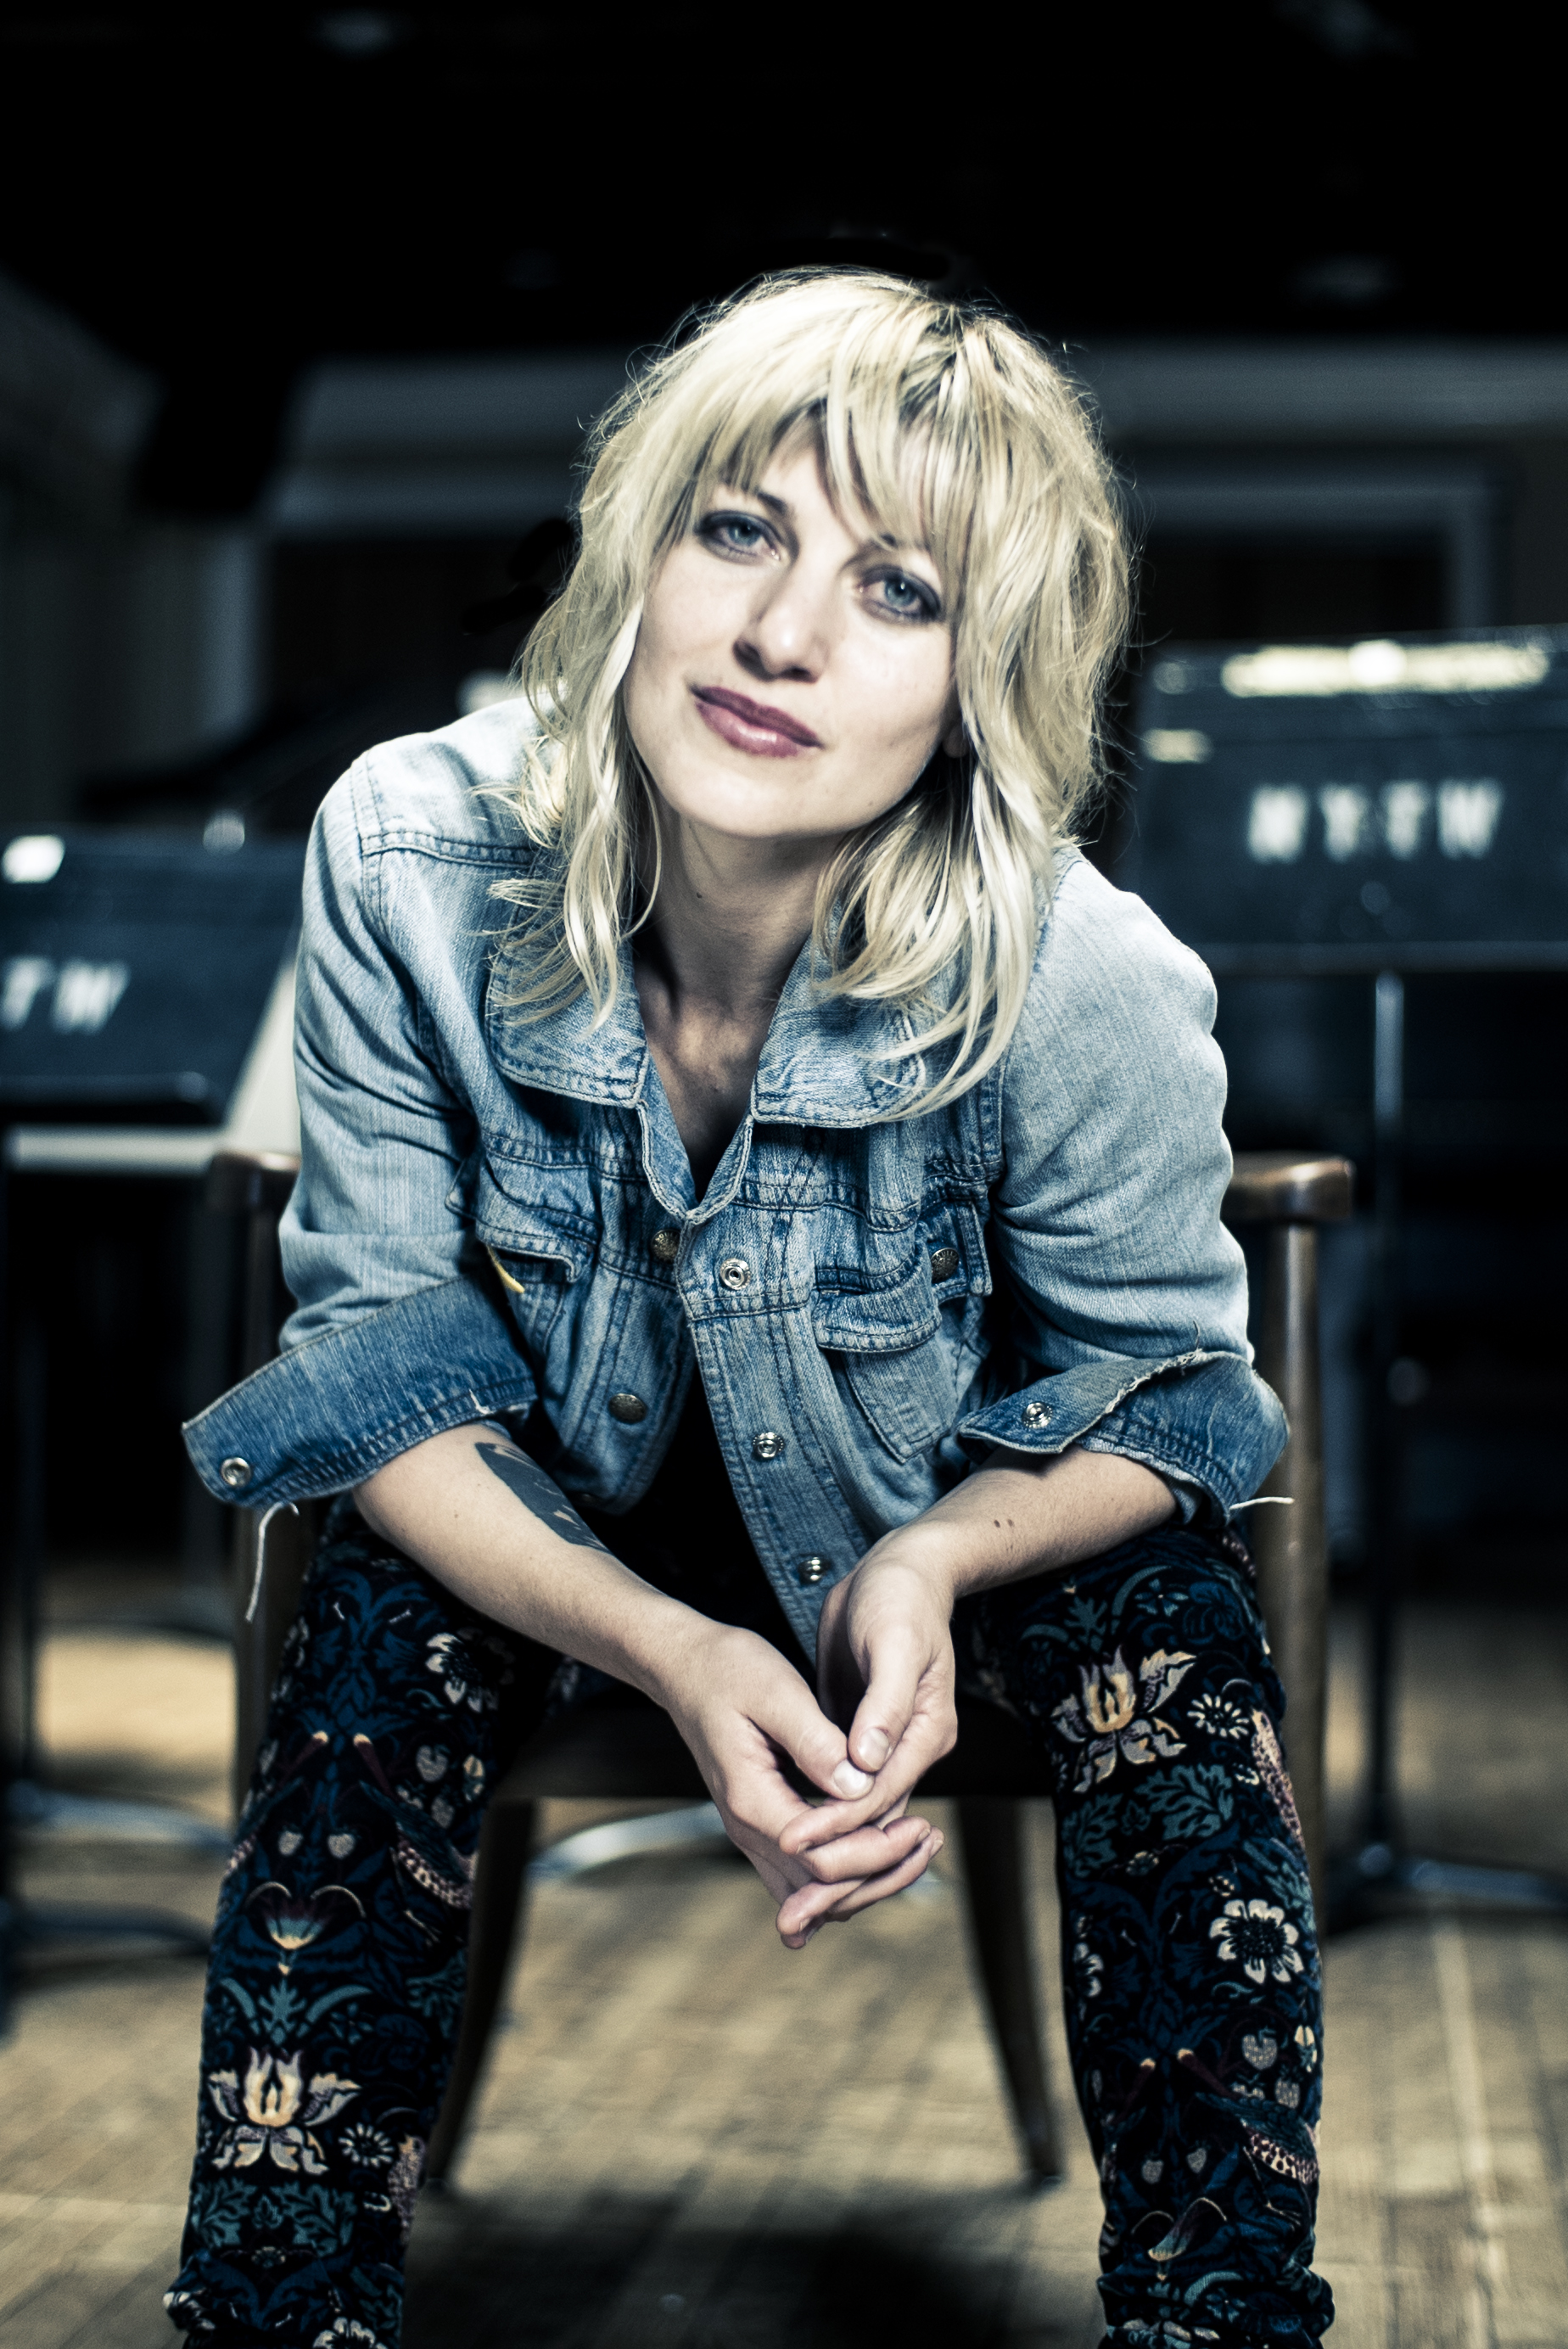 Anais mitchell musicstandsclosecolour credit jay sansone